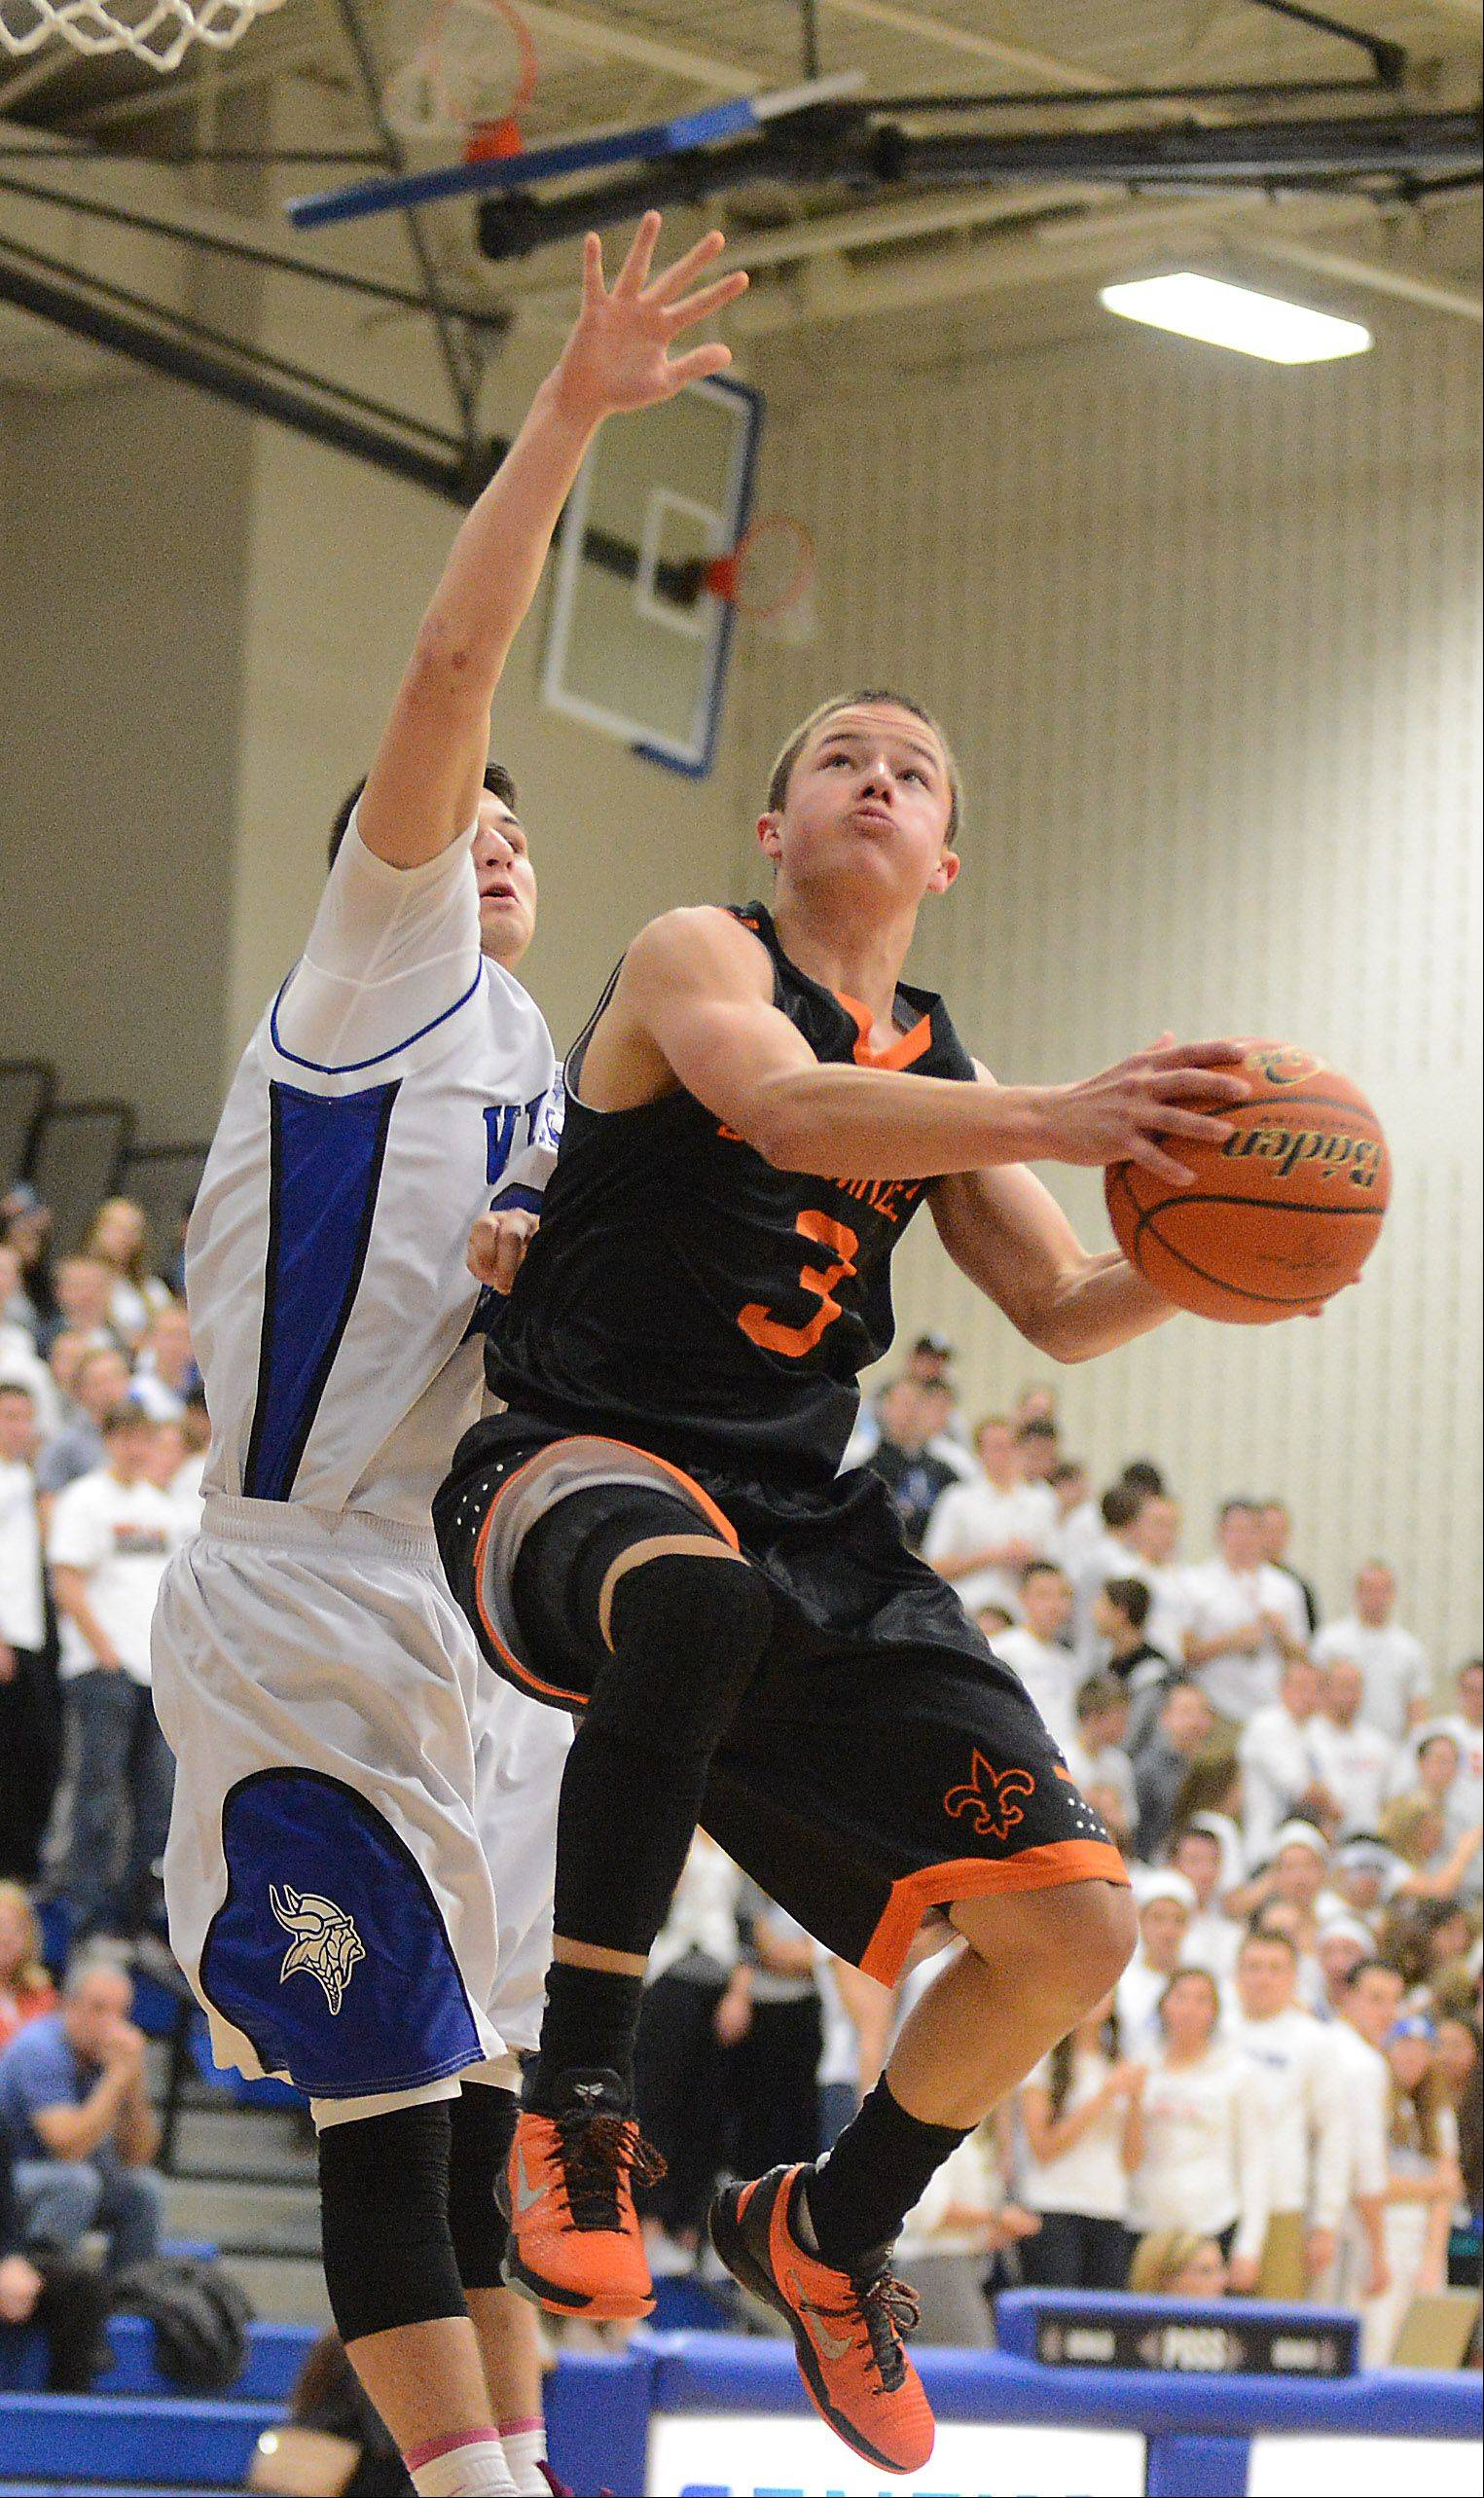 St. Charles East's Cole Gentry drives and scores.